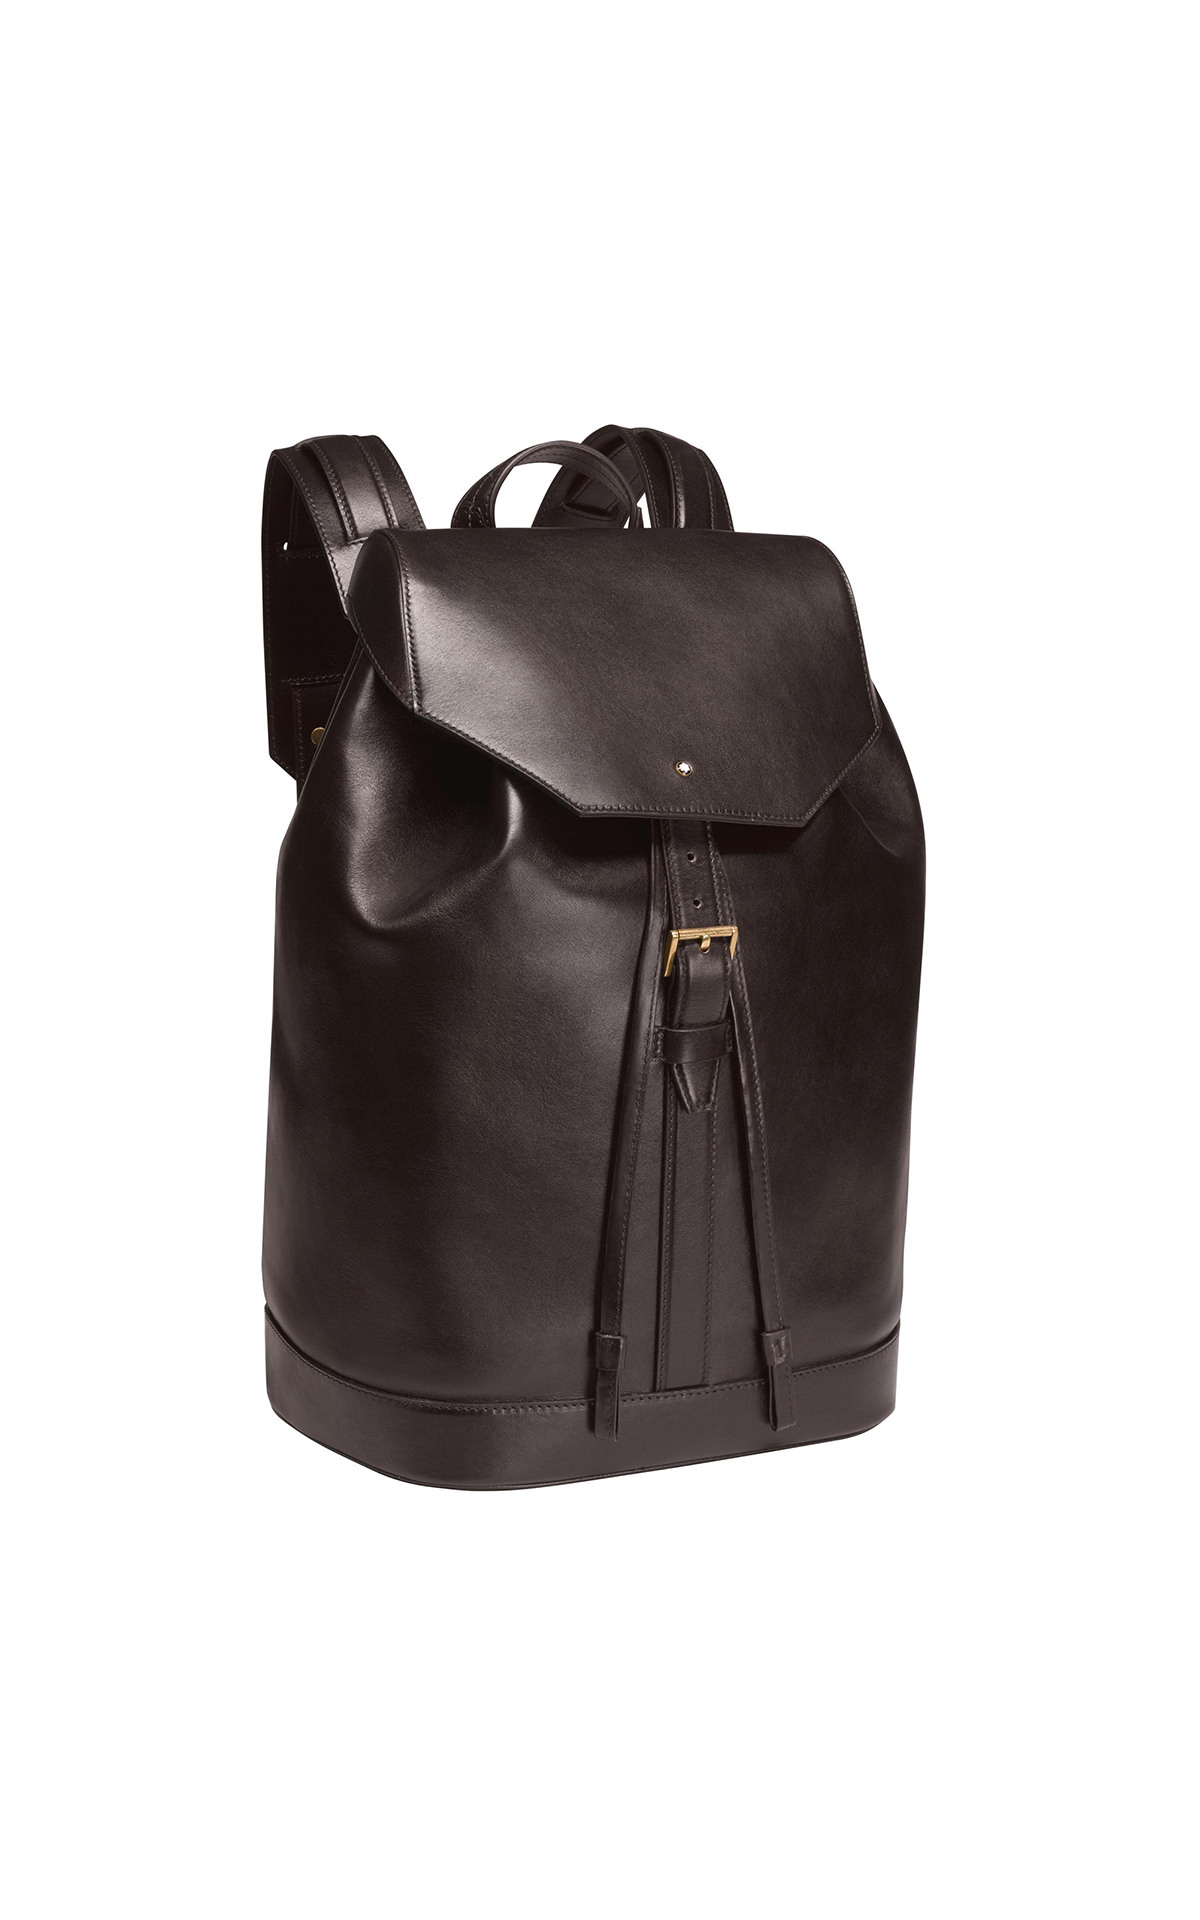 Montblanc Small heritage backpack